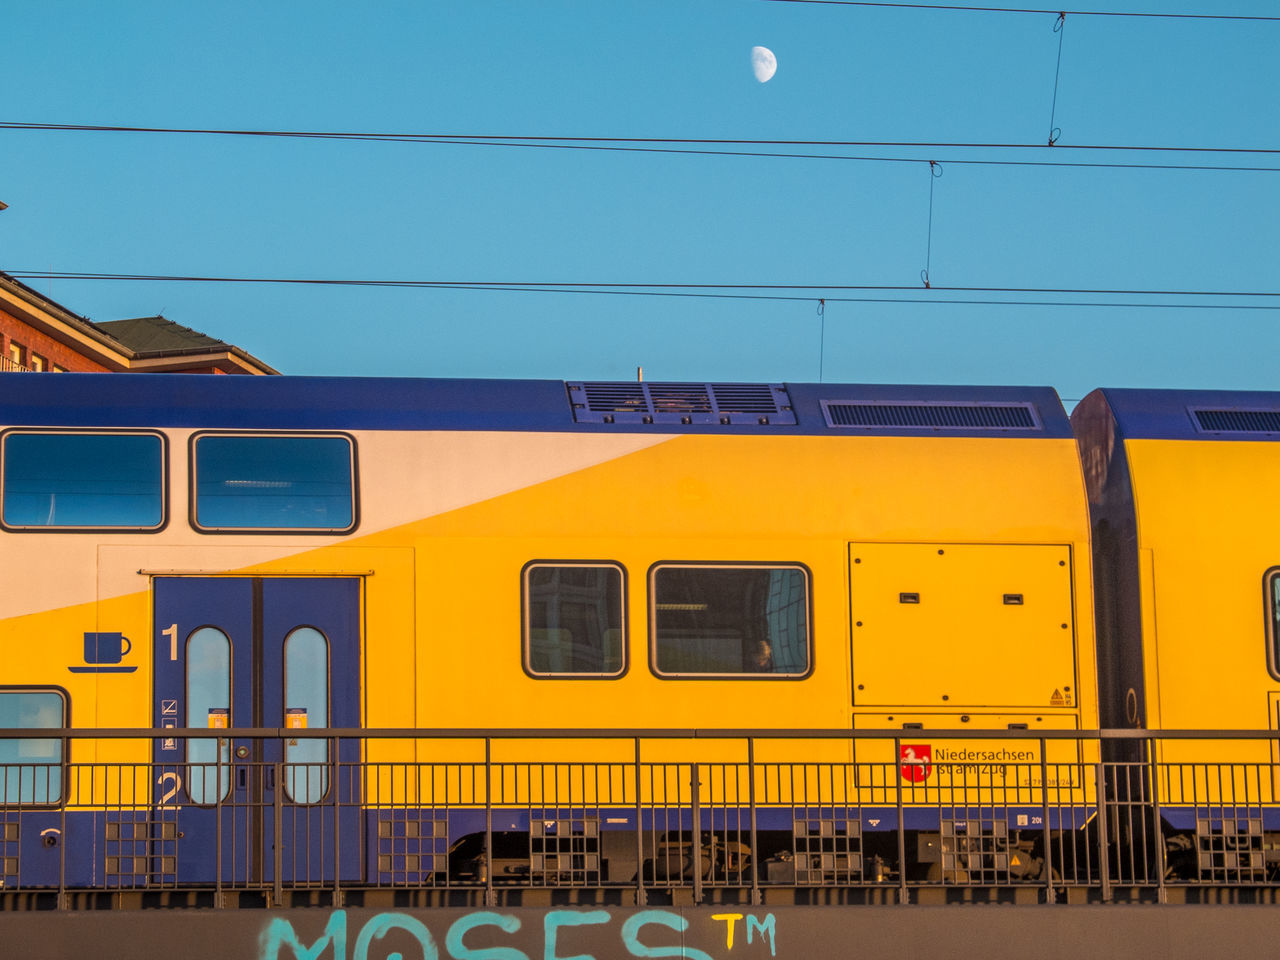 transportation, train - vehicle, mode of transport, public transportation, rail transportation, outdoors, cable, blue, day, railroad track, no people, sky, yellow, stationary, clear sky, built structure, nature, architecture